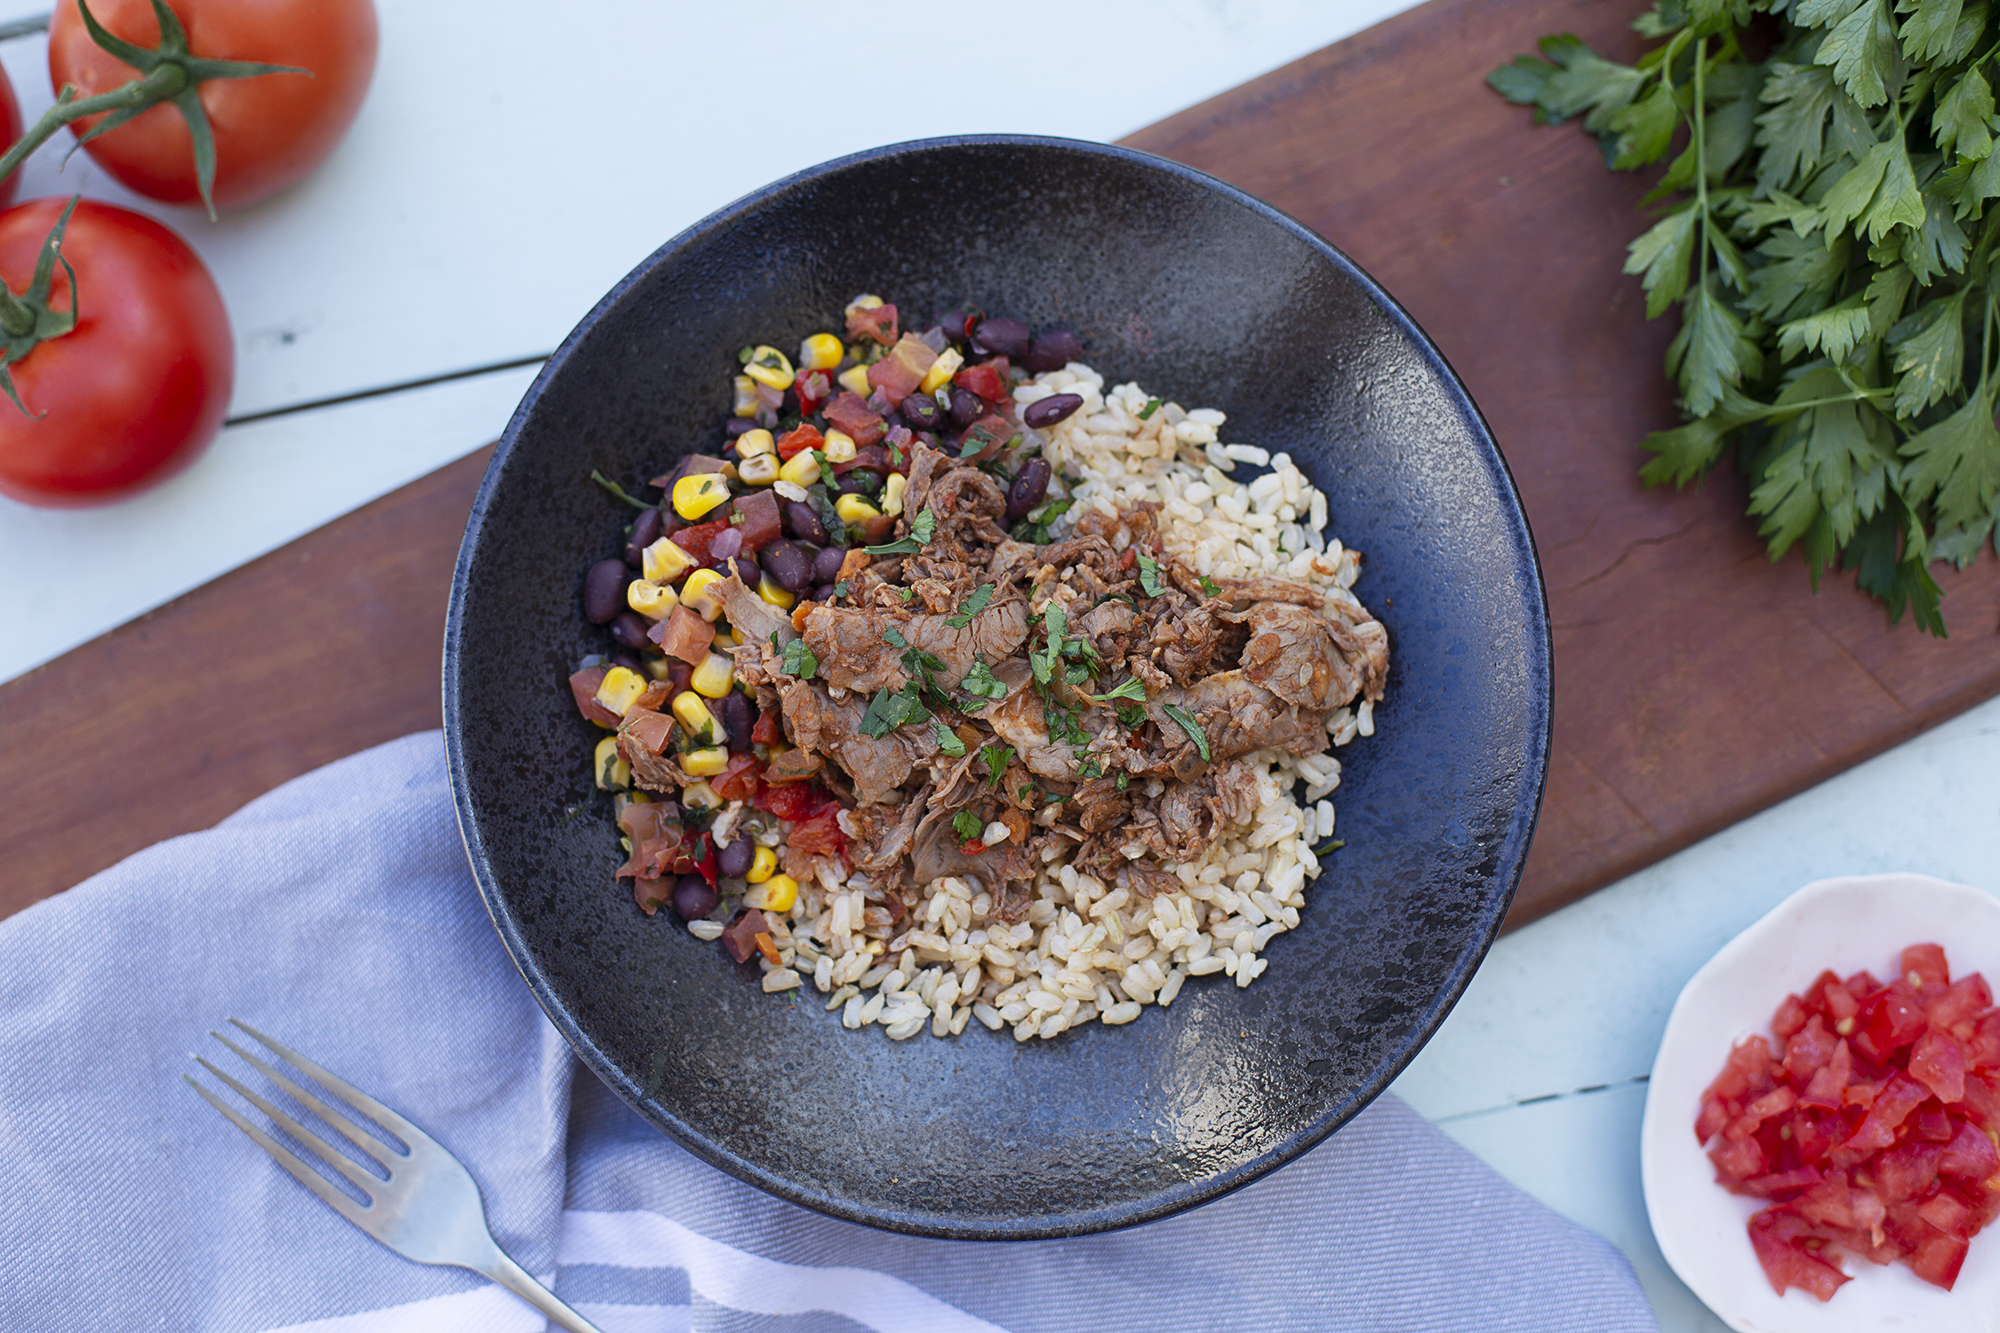 1002. Beef Burrito Bowl served with coriander, corn, tomato, bean salsa and brown rice